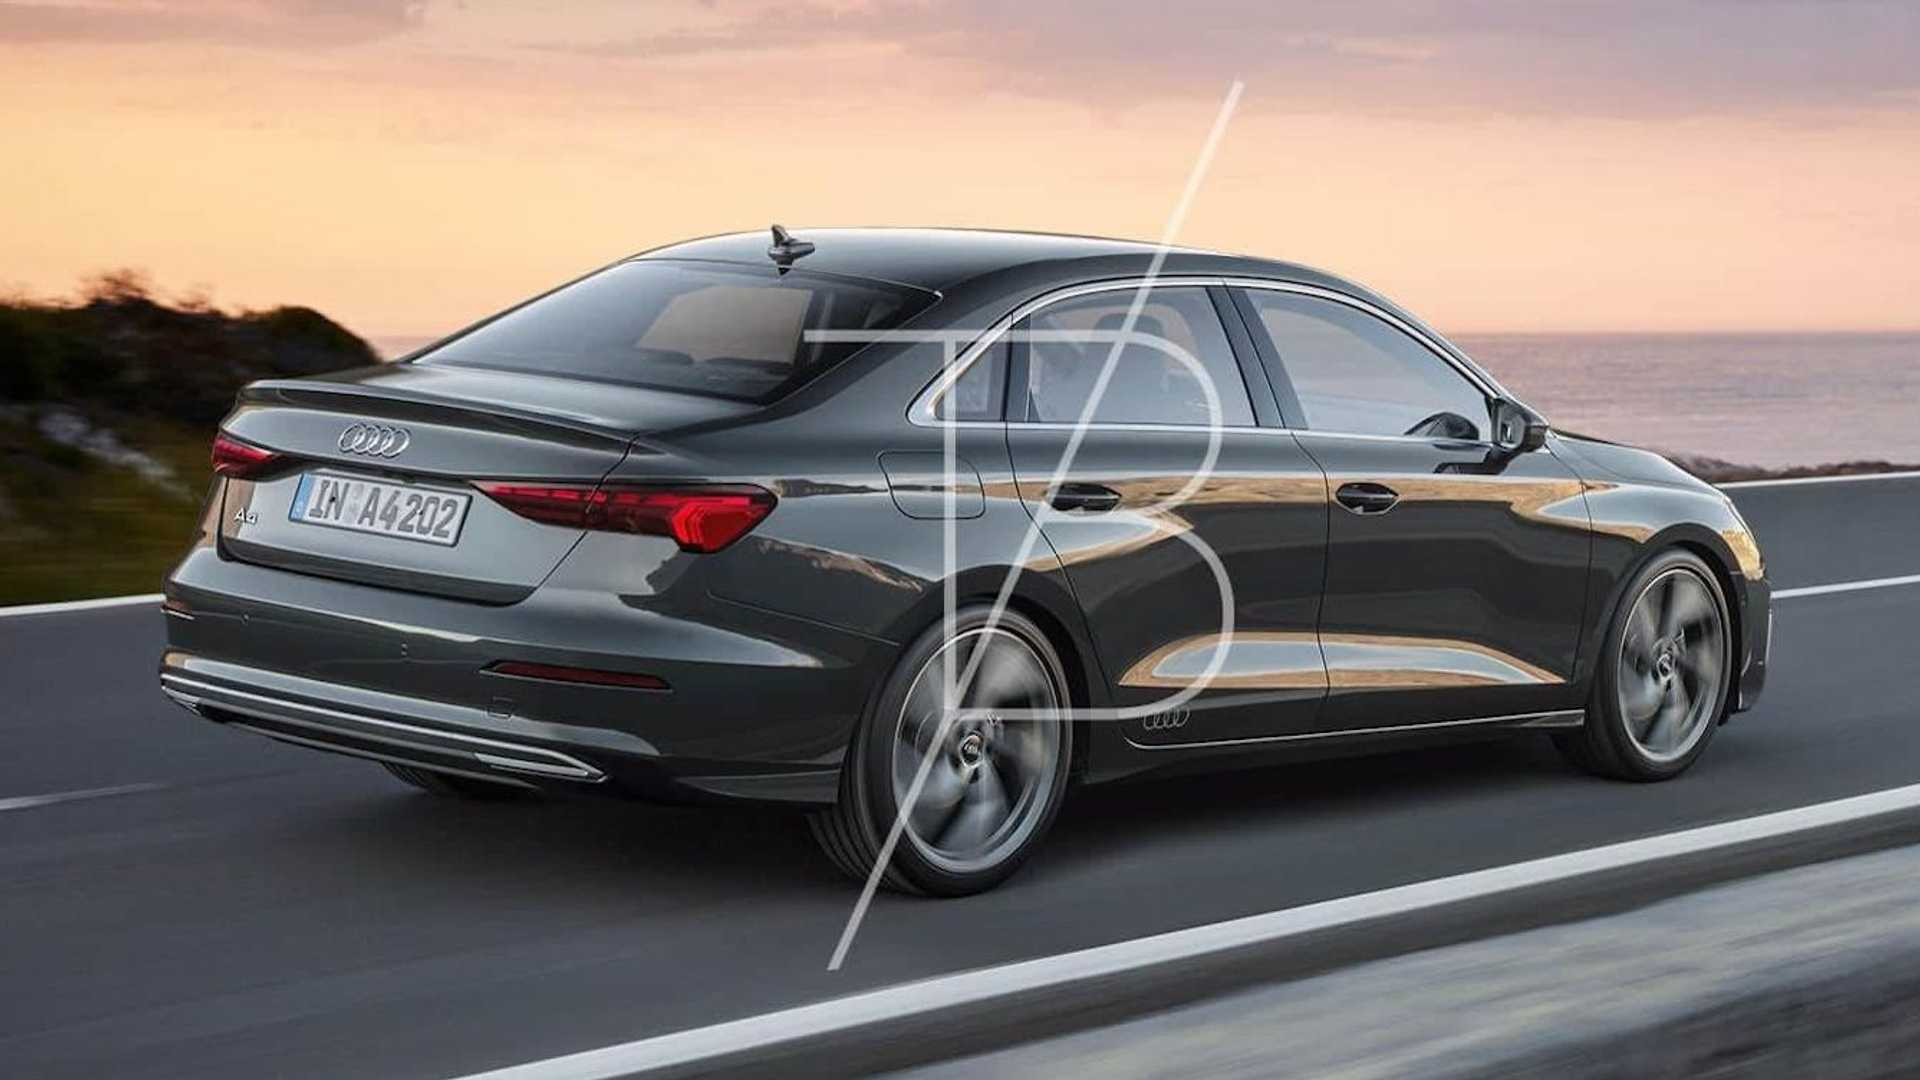 all-new-2023-audi-a4-wont-go-full-ev-just-yet-will-stick-with-gasoline-and-diesel-power_2.jpg